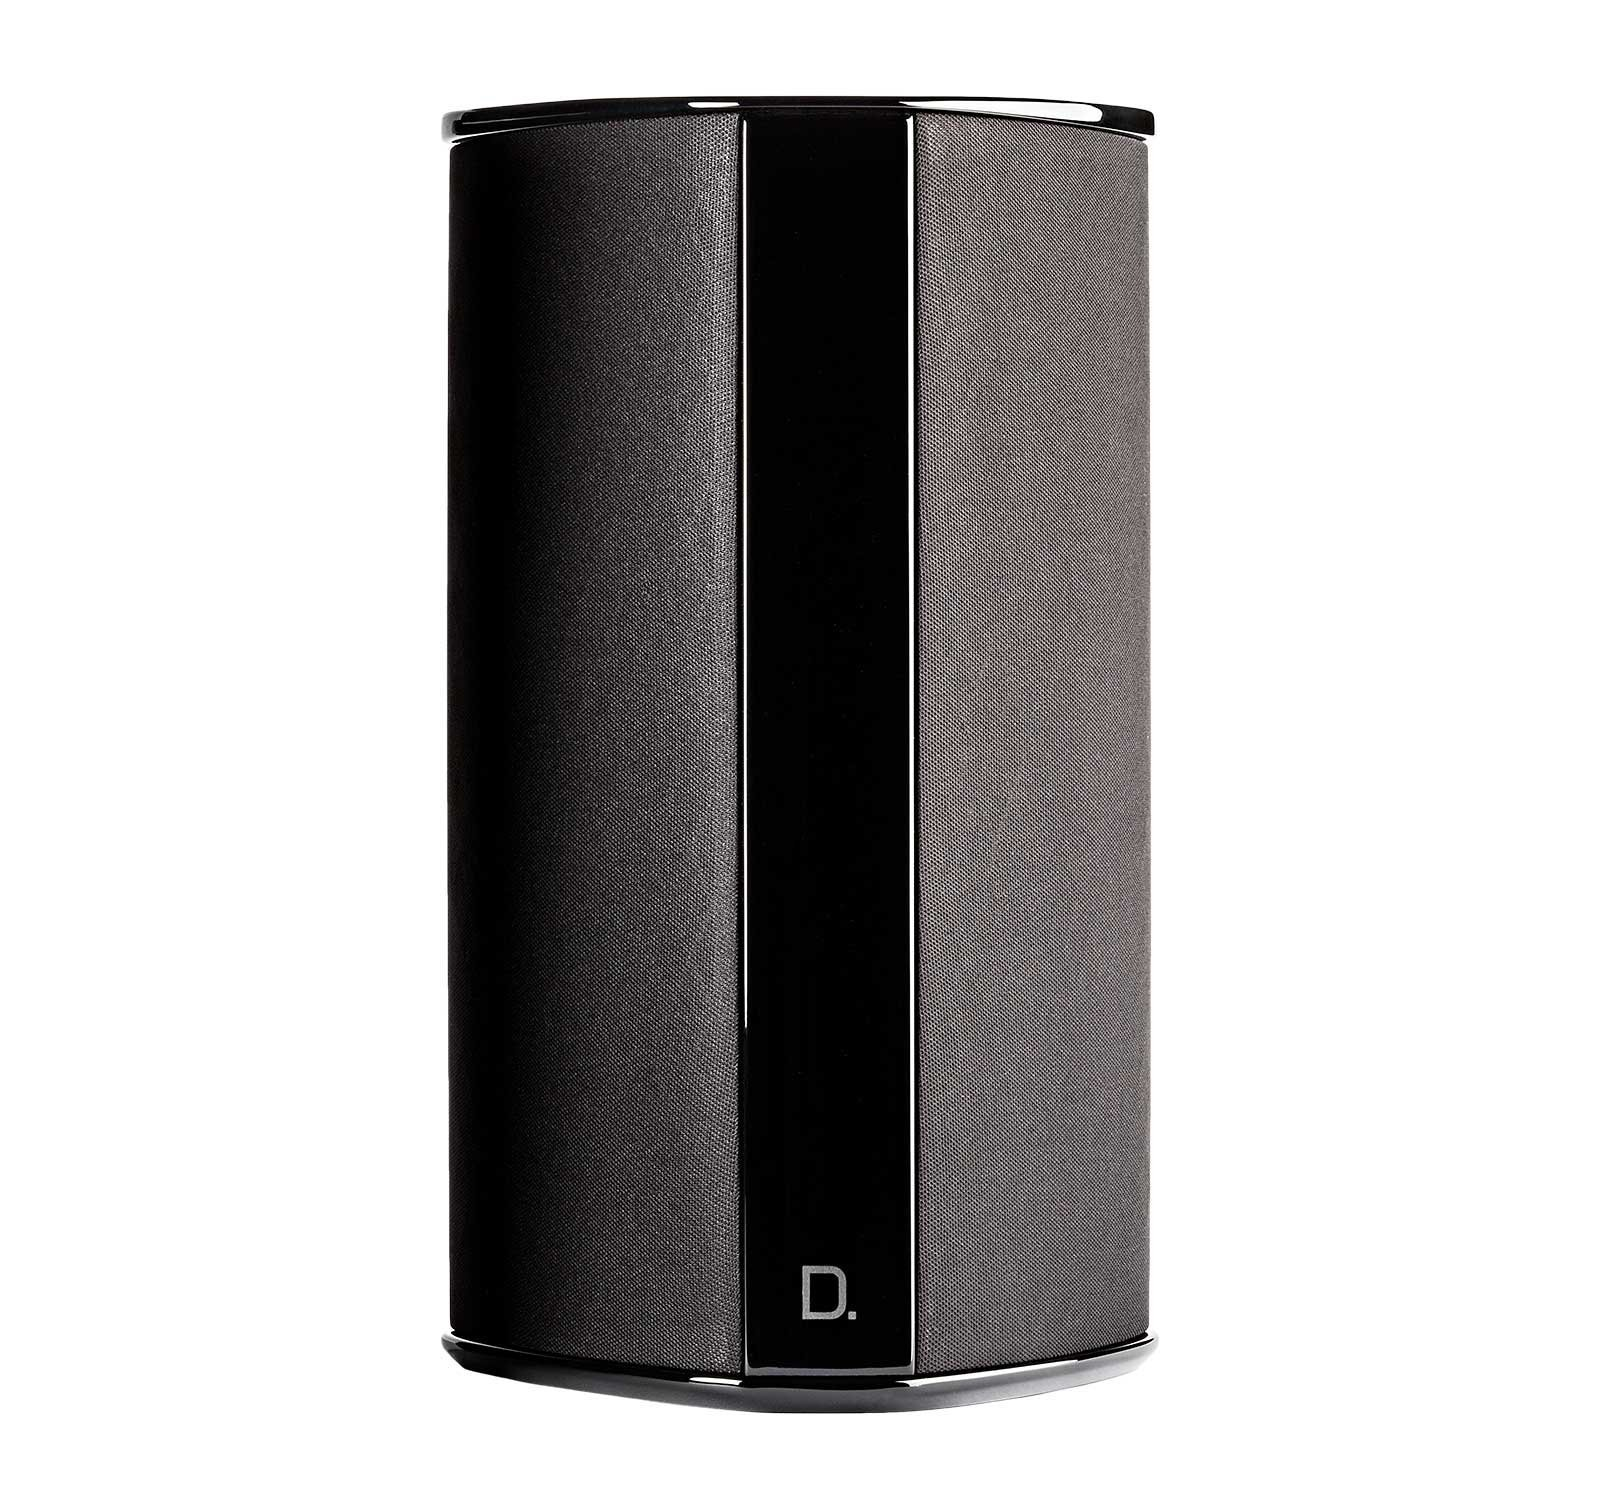 Definitive Technology SR-9080 15'' Bipolar Surround Speaker | High Performance | Premium Sound Quality | Wall or Table Placement Options | Single, Black by Definitive Technology